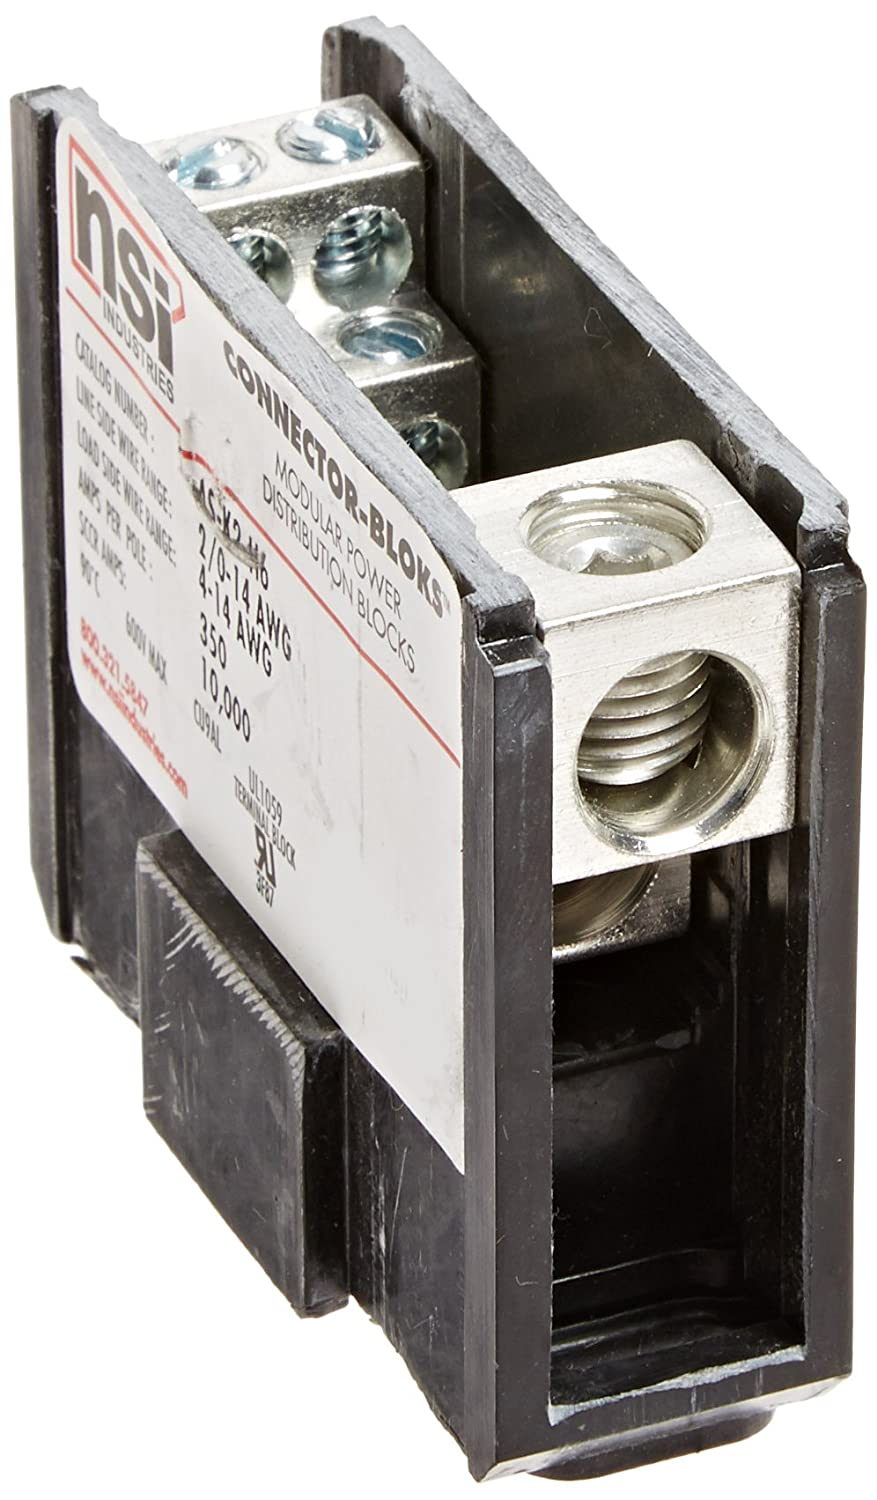 Double Primary Power Distribution and Terminal Block 2//0-14 AWG Line and 4-14 AWG Load Side Configuration 2.90 Length 1.04 Width 2.34 Height 2.90 Length NSi Industries AS-K2-H6 Multiple Secondary 1.04 Width Connector Blok 2.34 Height